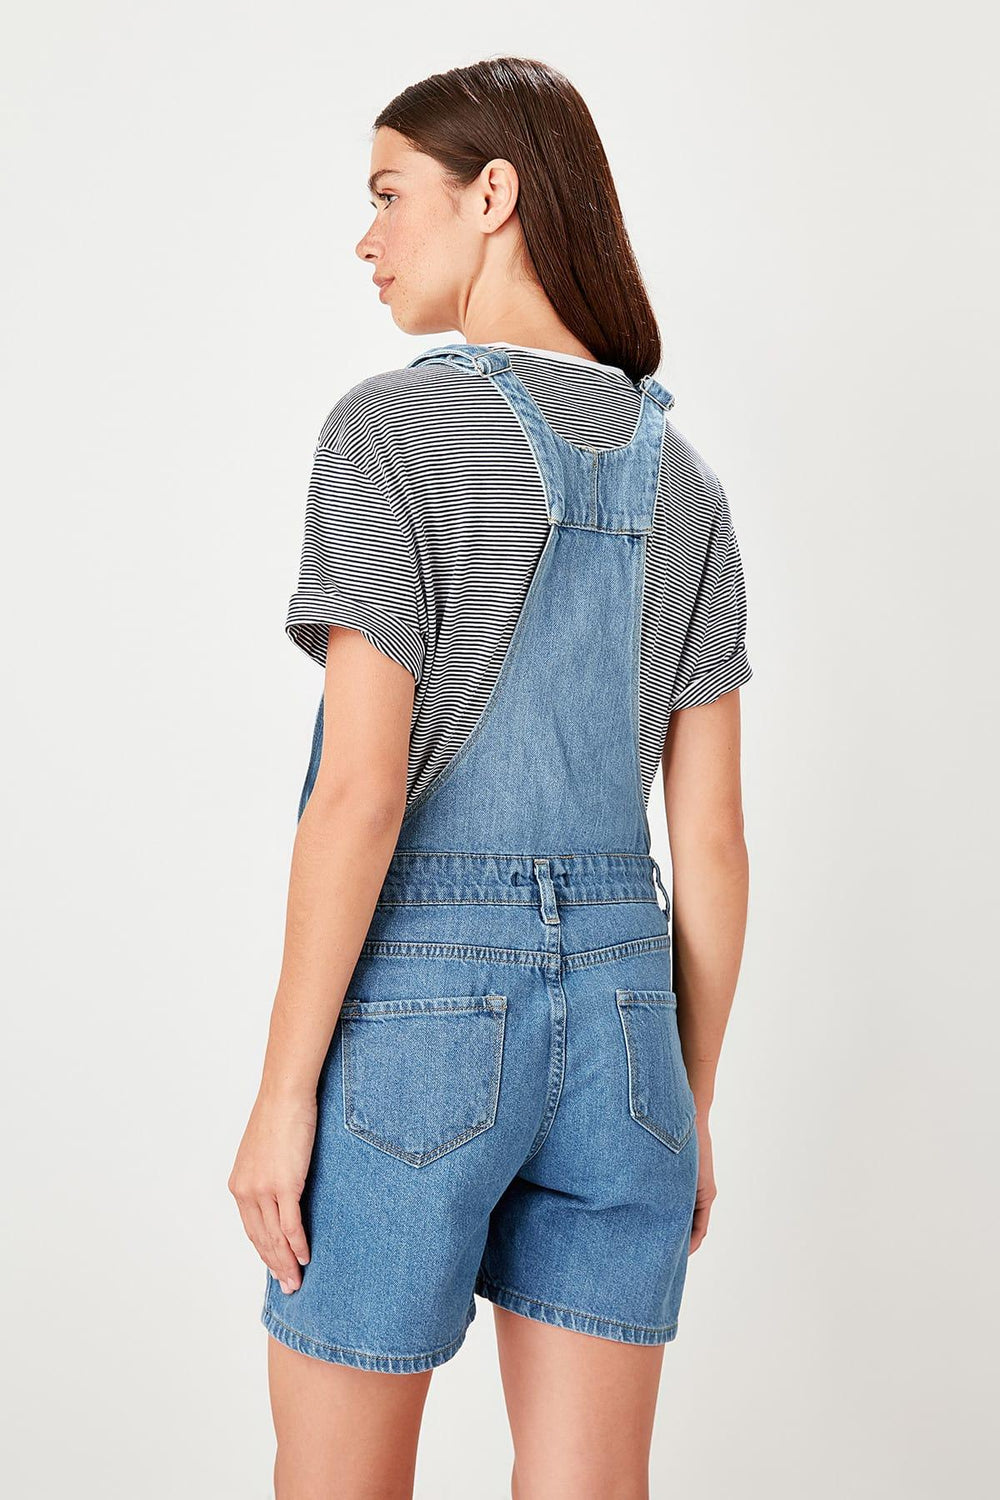 Miss Zut Miss Zut Blue Denim Jumpsuit Miss Zut &CO